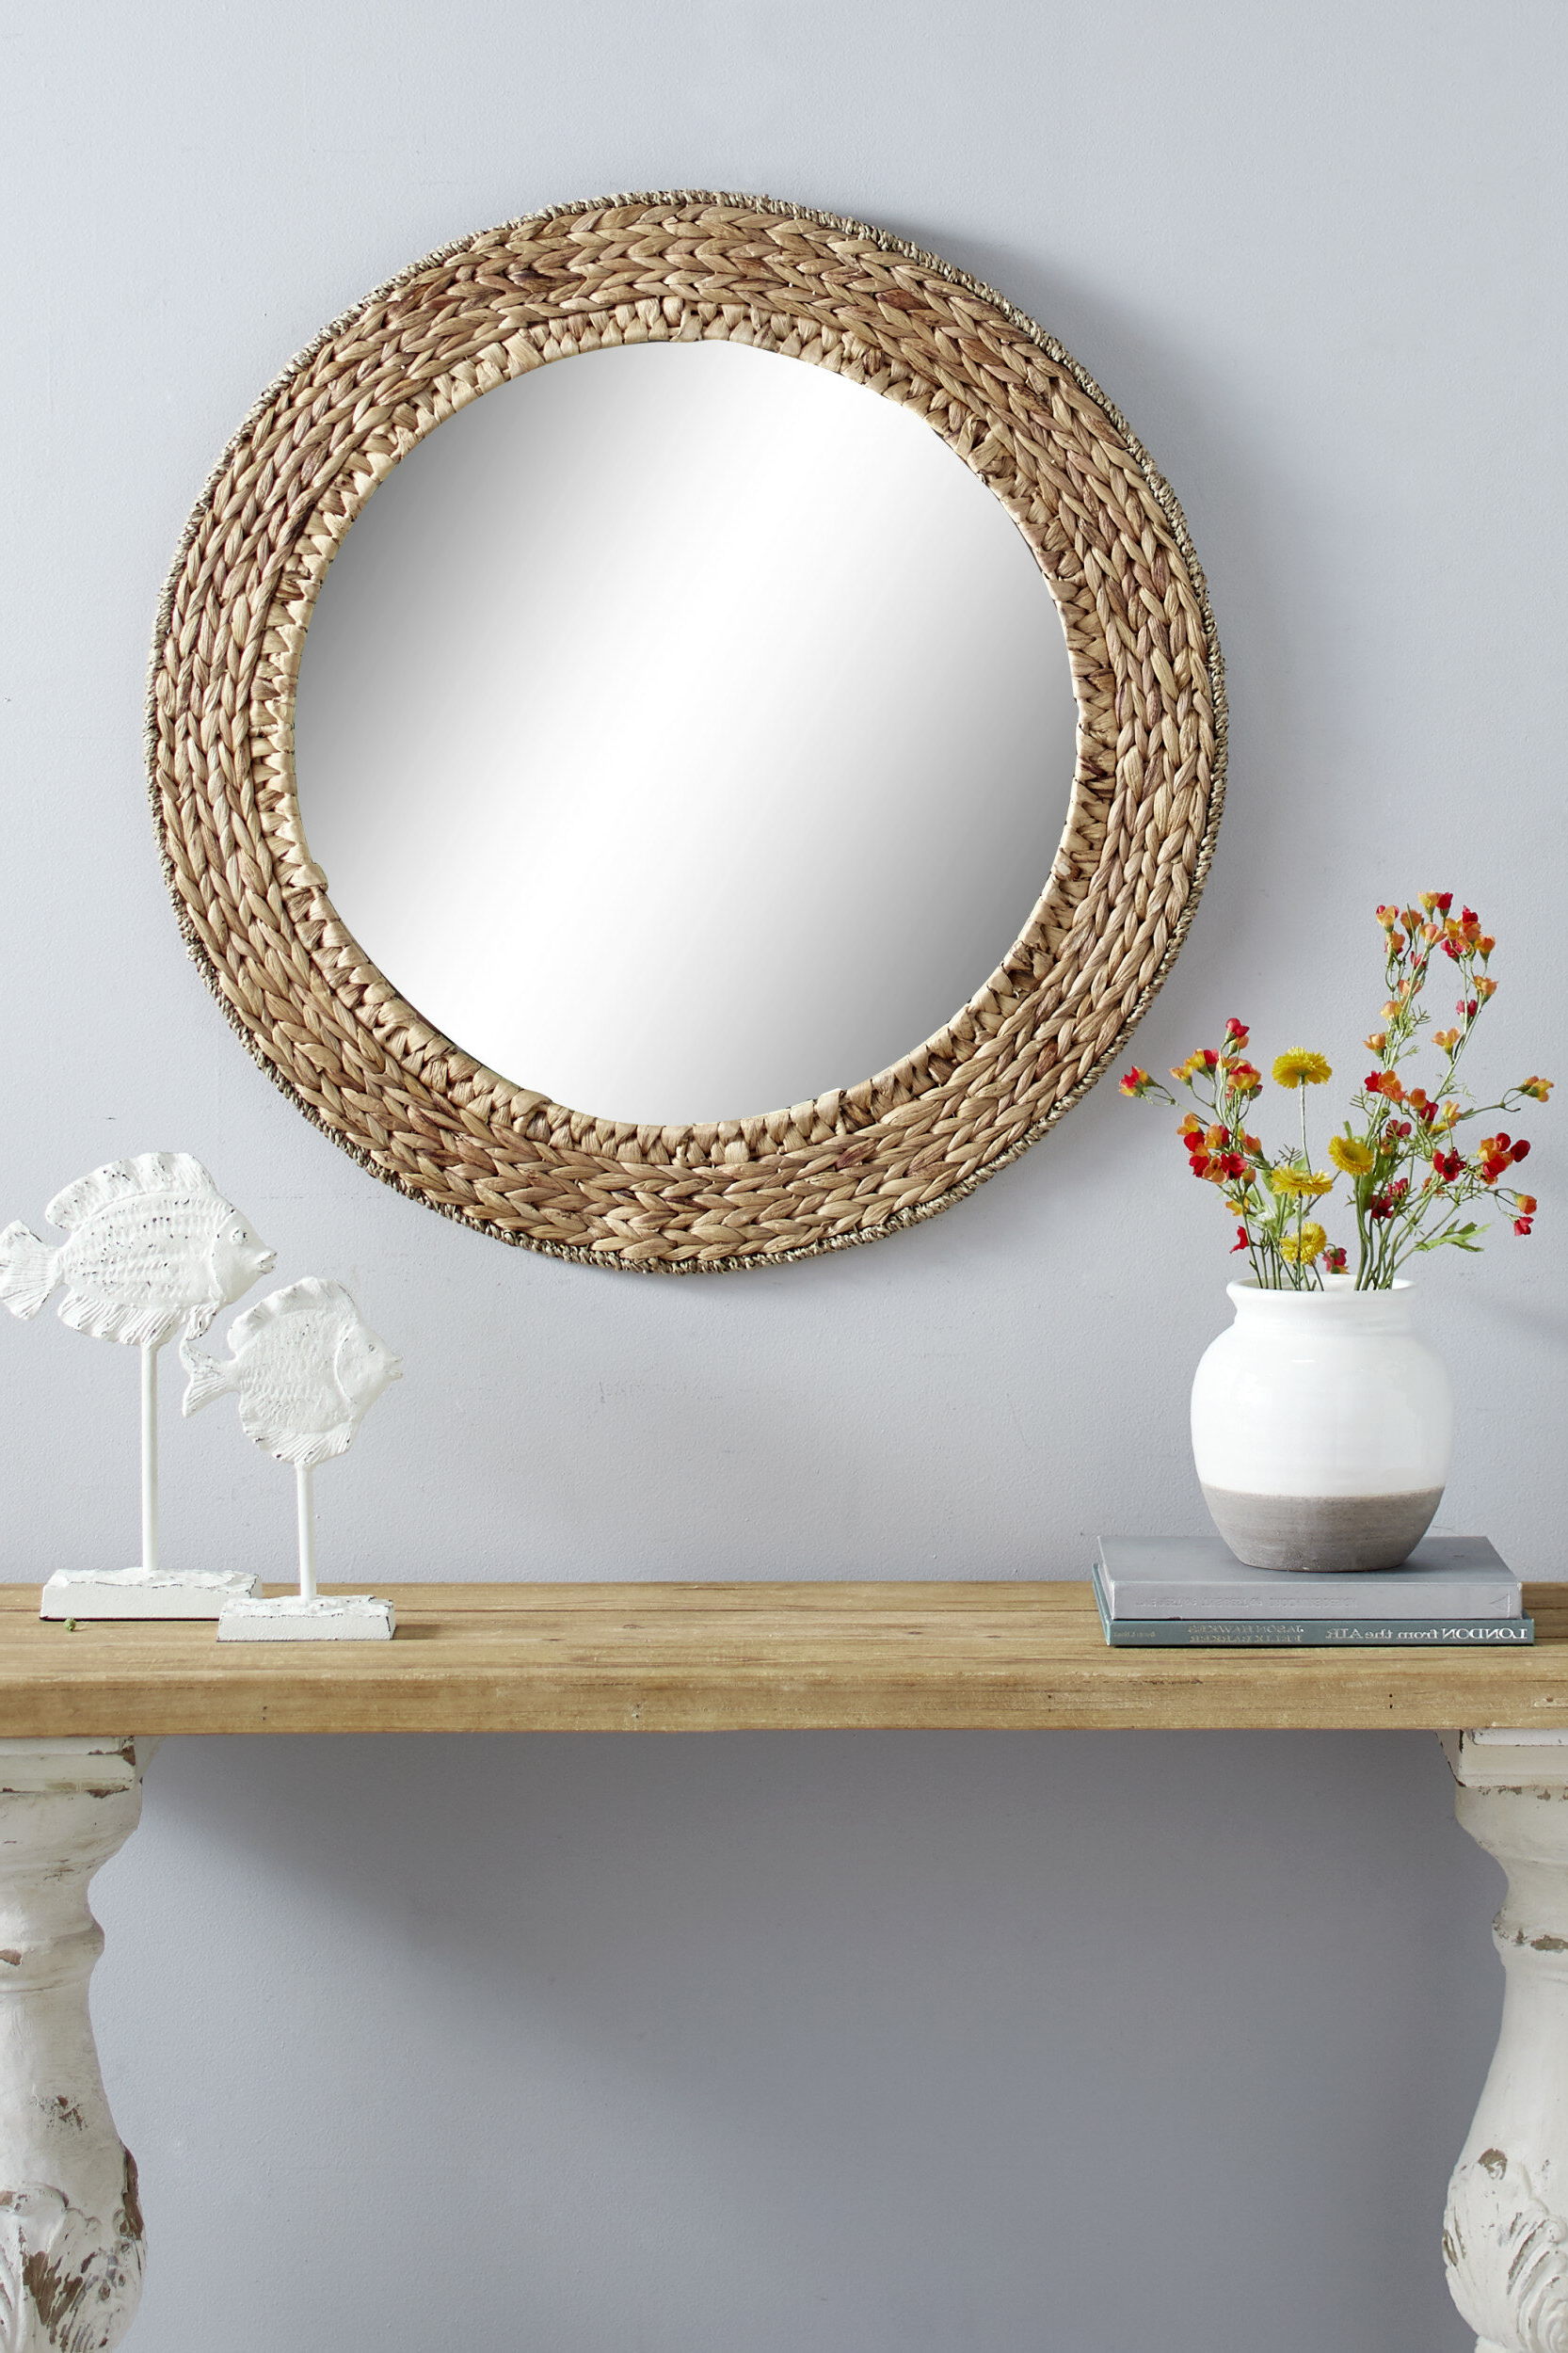 Chiara Round Handmade Wicker Rustic Accent Mirror Regarding Current Traditional/coastal Accent Mirrors (View 9 of 20)